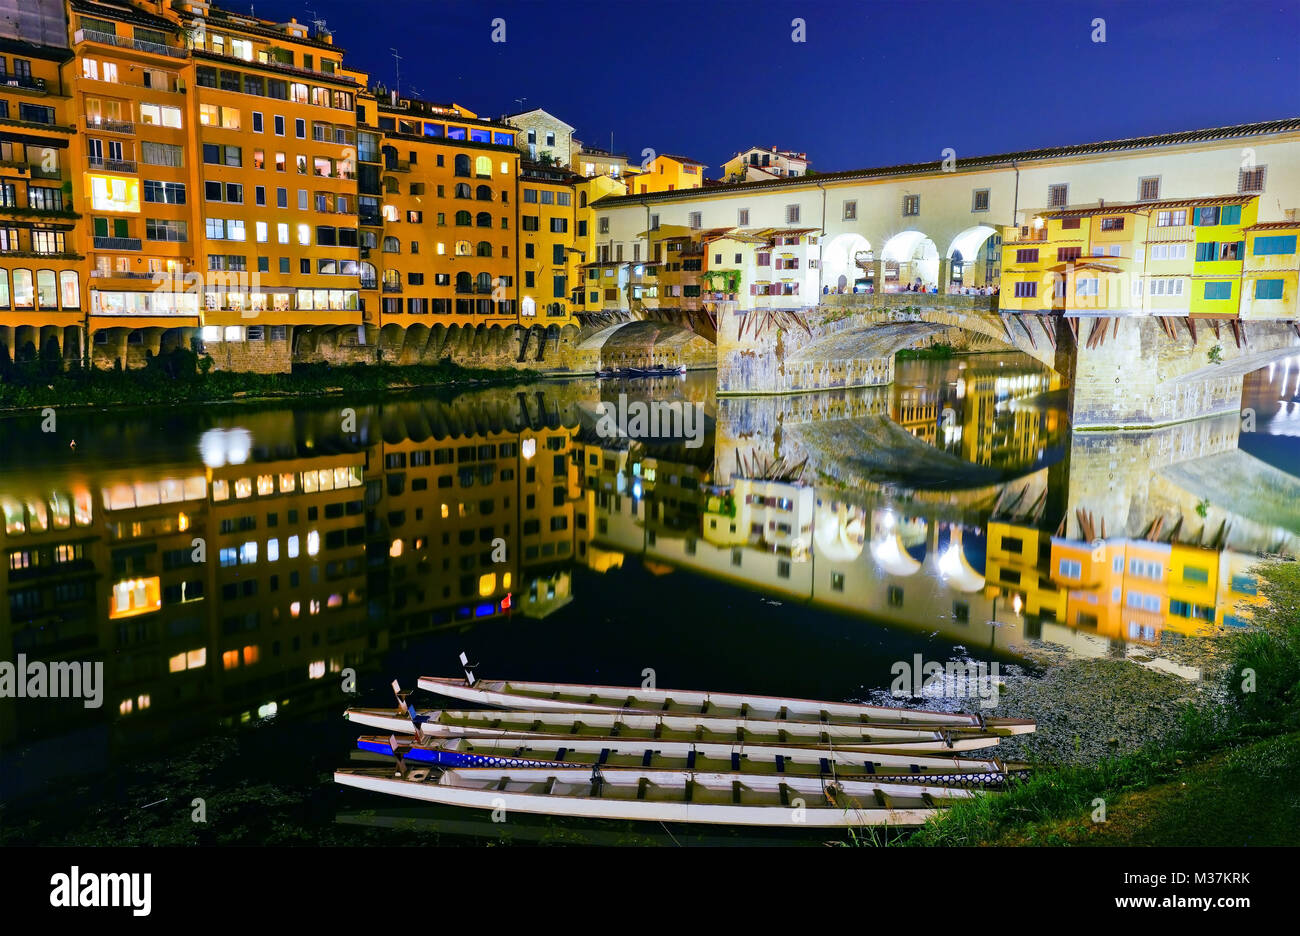 View of the Old Bridge across the Arno River in Florence at night. - Stock Image